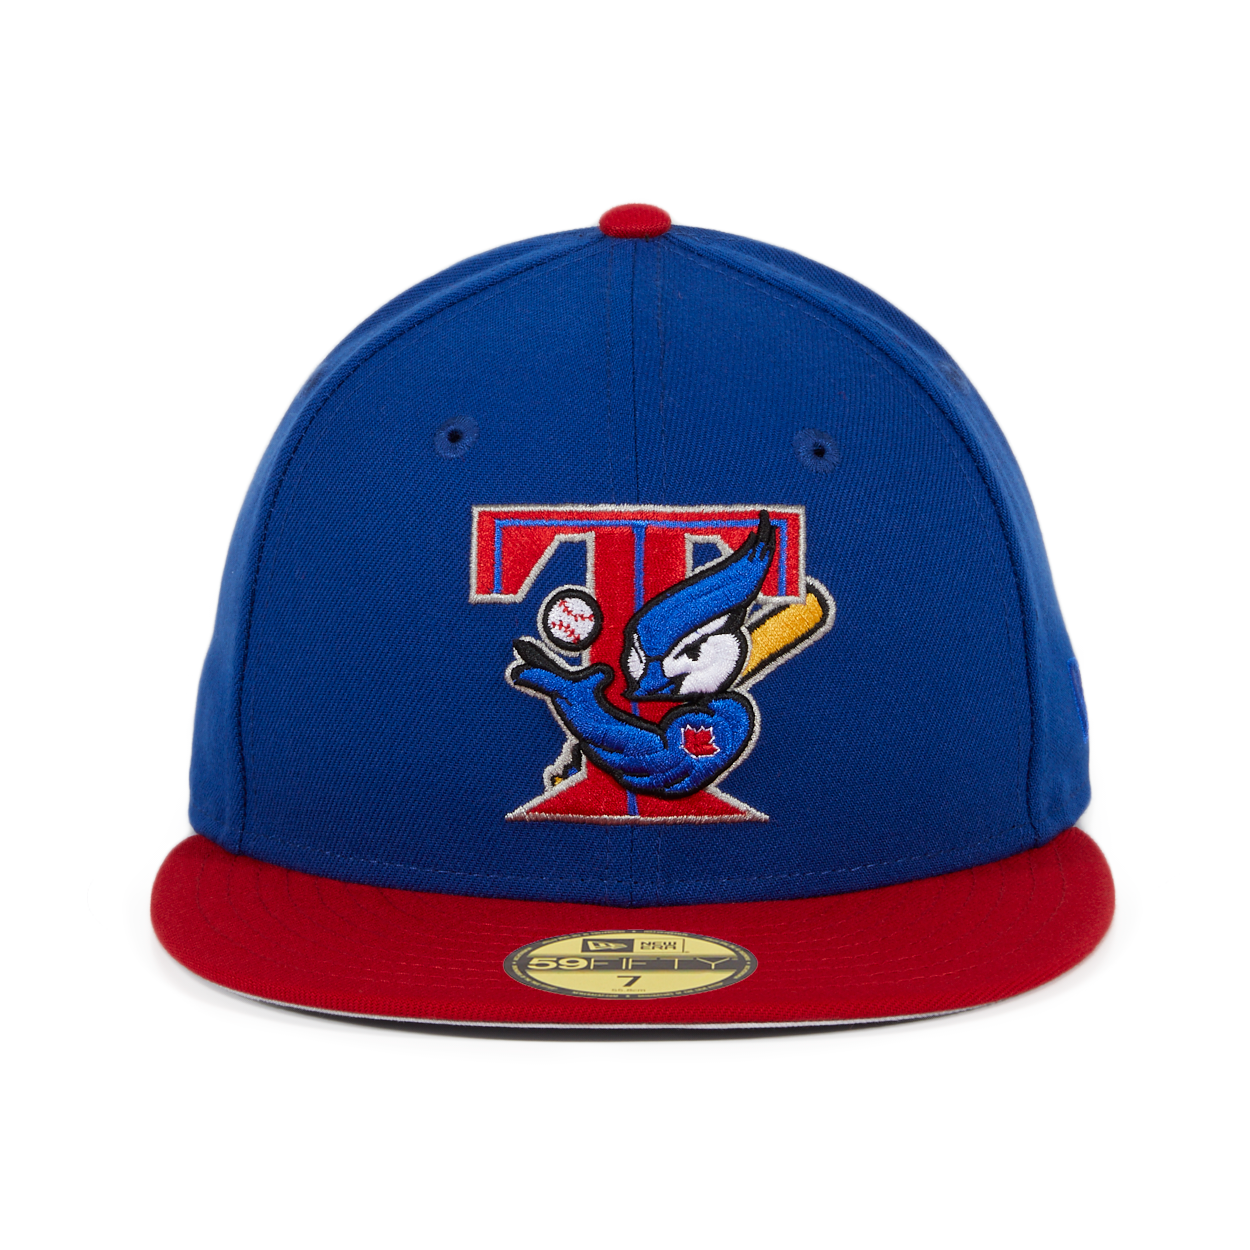 66c4de3ff75 Exclusive New Era 59Fifty Toronto Blue Jays 2003 Hat - 2T Royal